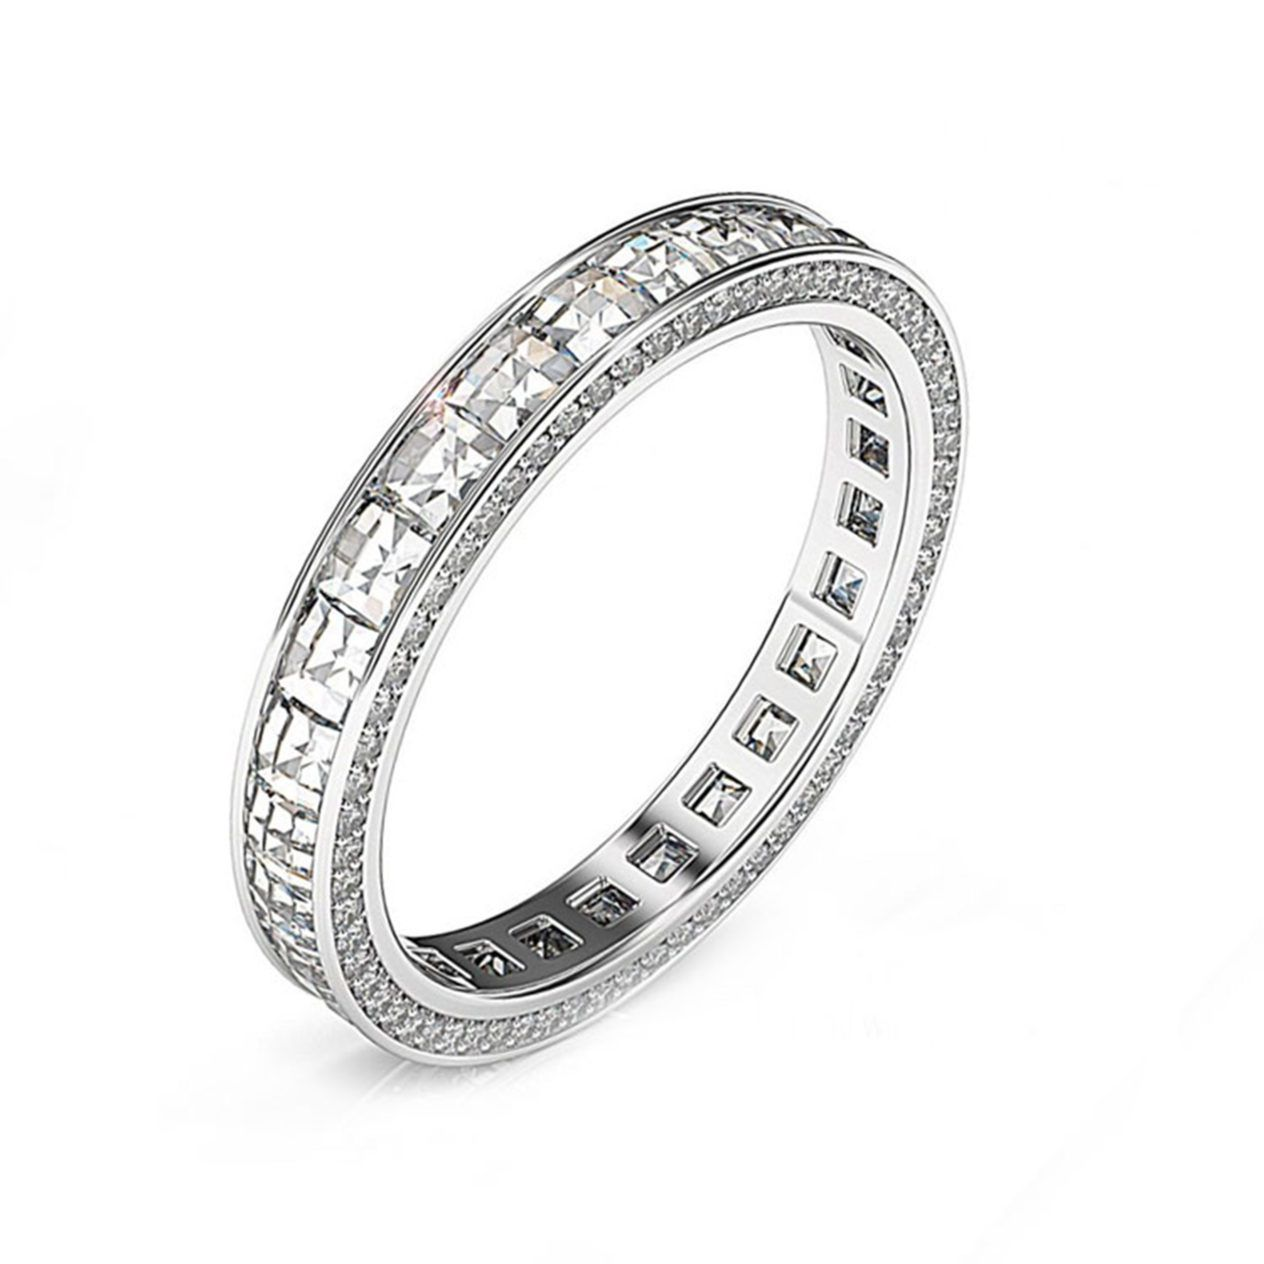 Bez Ambar White gold Blaze and Pave wedding Ring - Explore the collection at Wedding Band Weekend!